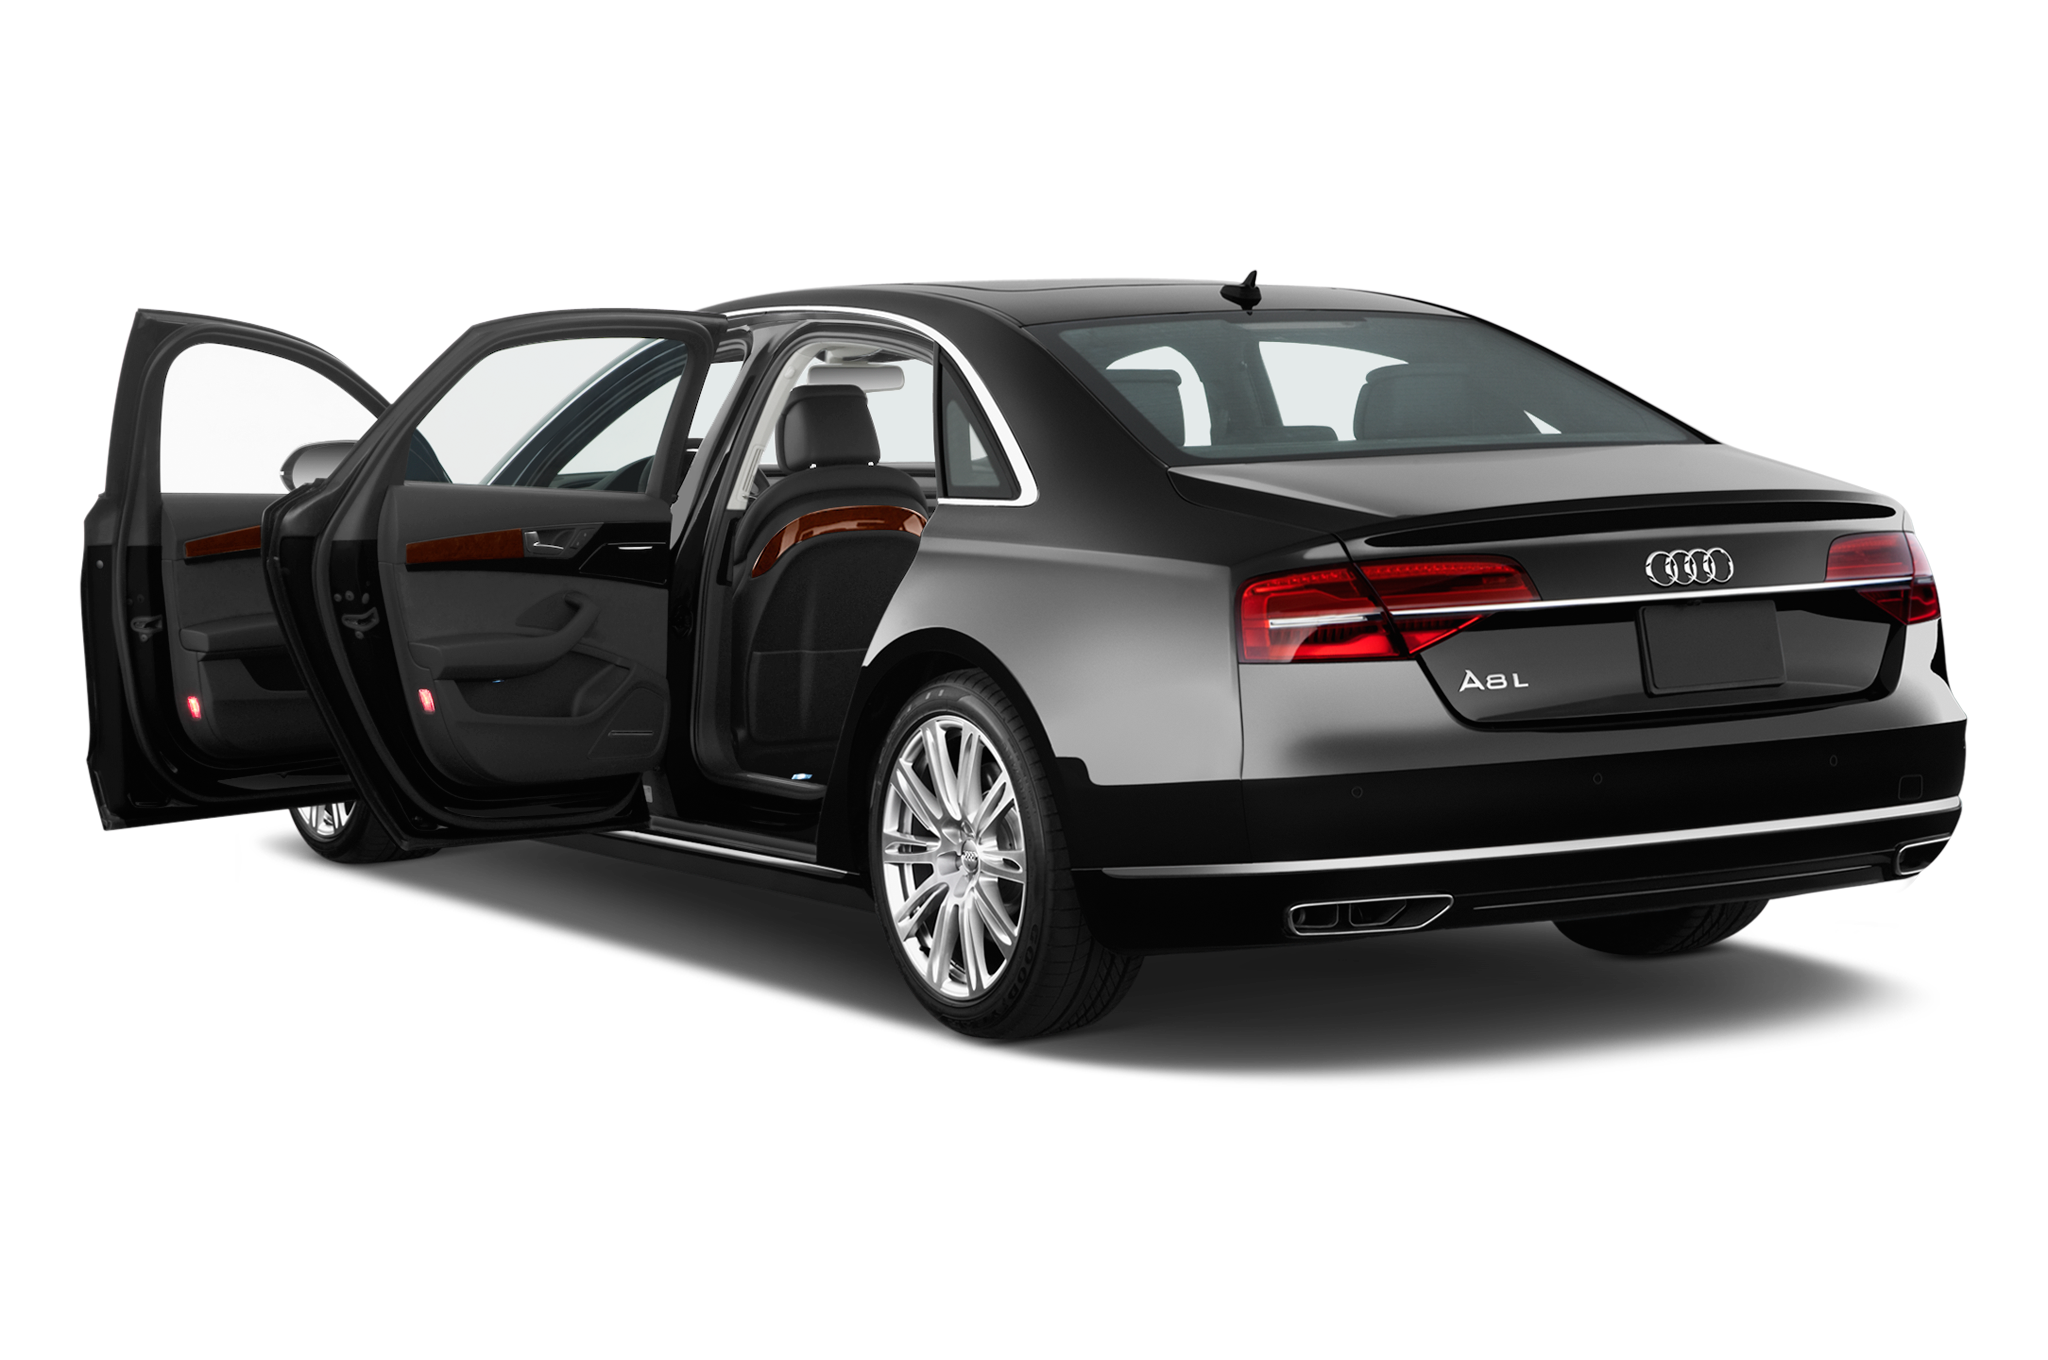 2016 Audi A8 Engine Diagram Just Another Wiring Blog 3 0t L Gains 4 Sport Model With Extra Power Visual Tweaks Rh Automobilemag Com 2007 A8l 2006 A3